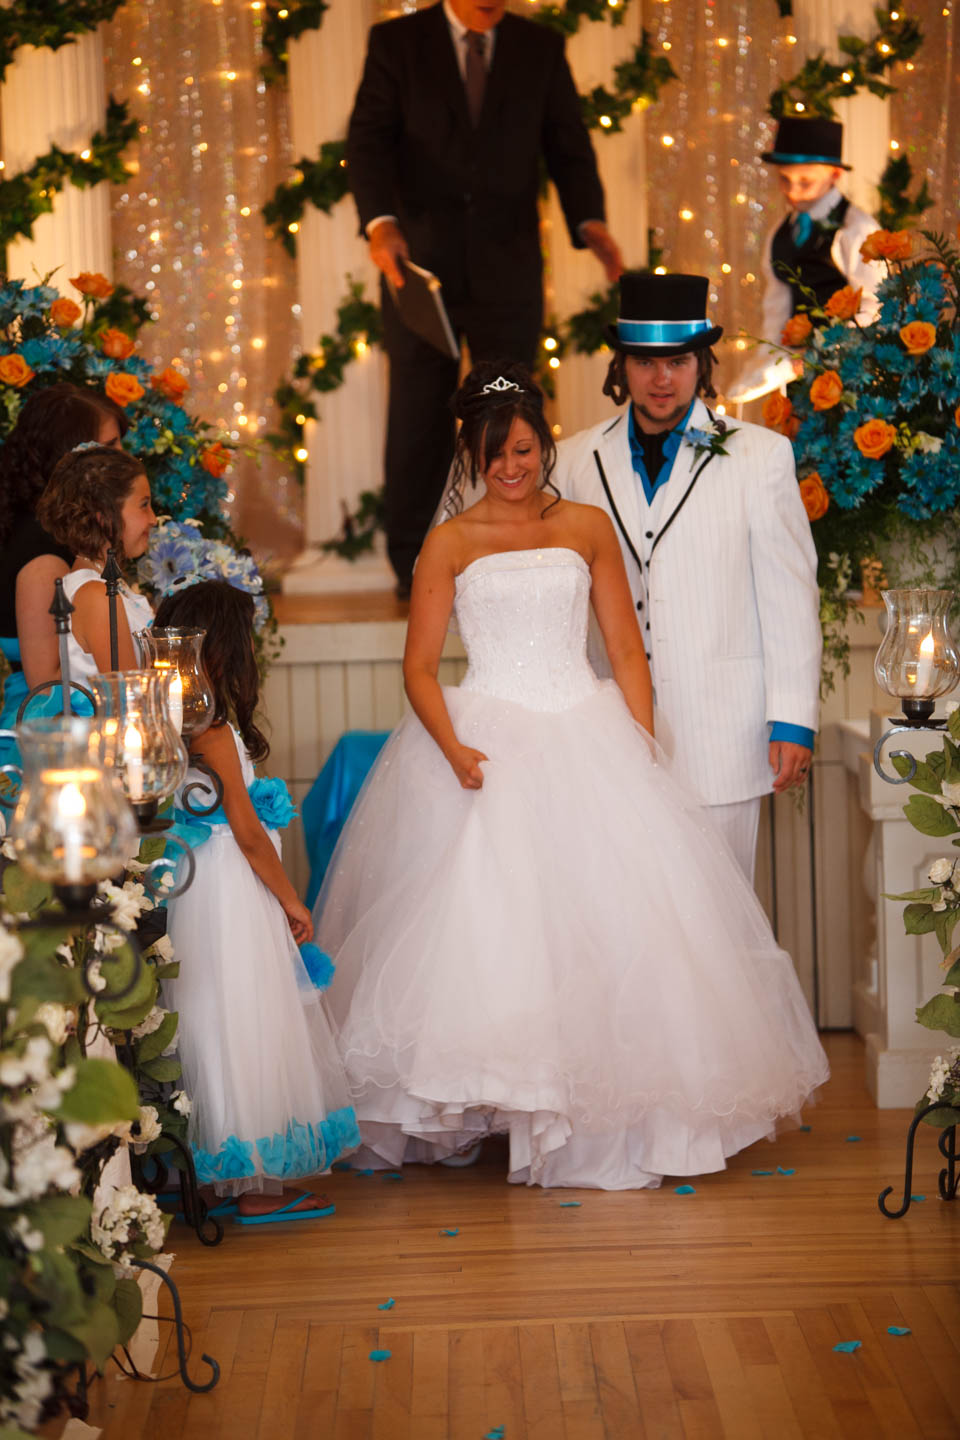 Walking down the aisle after being married